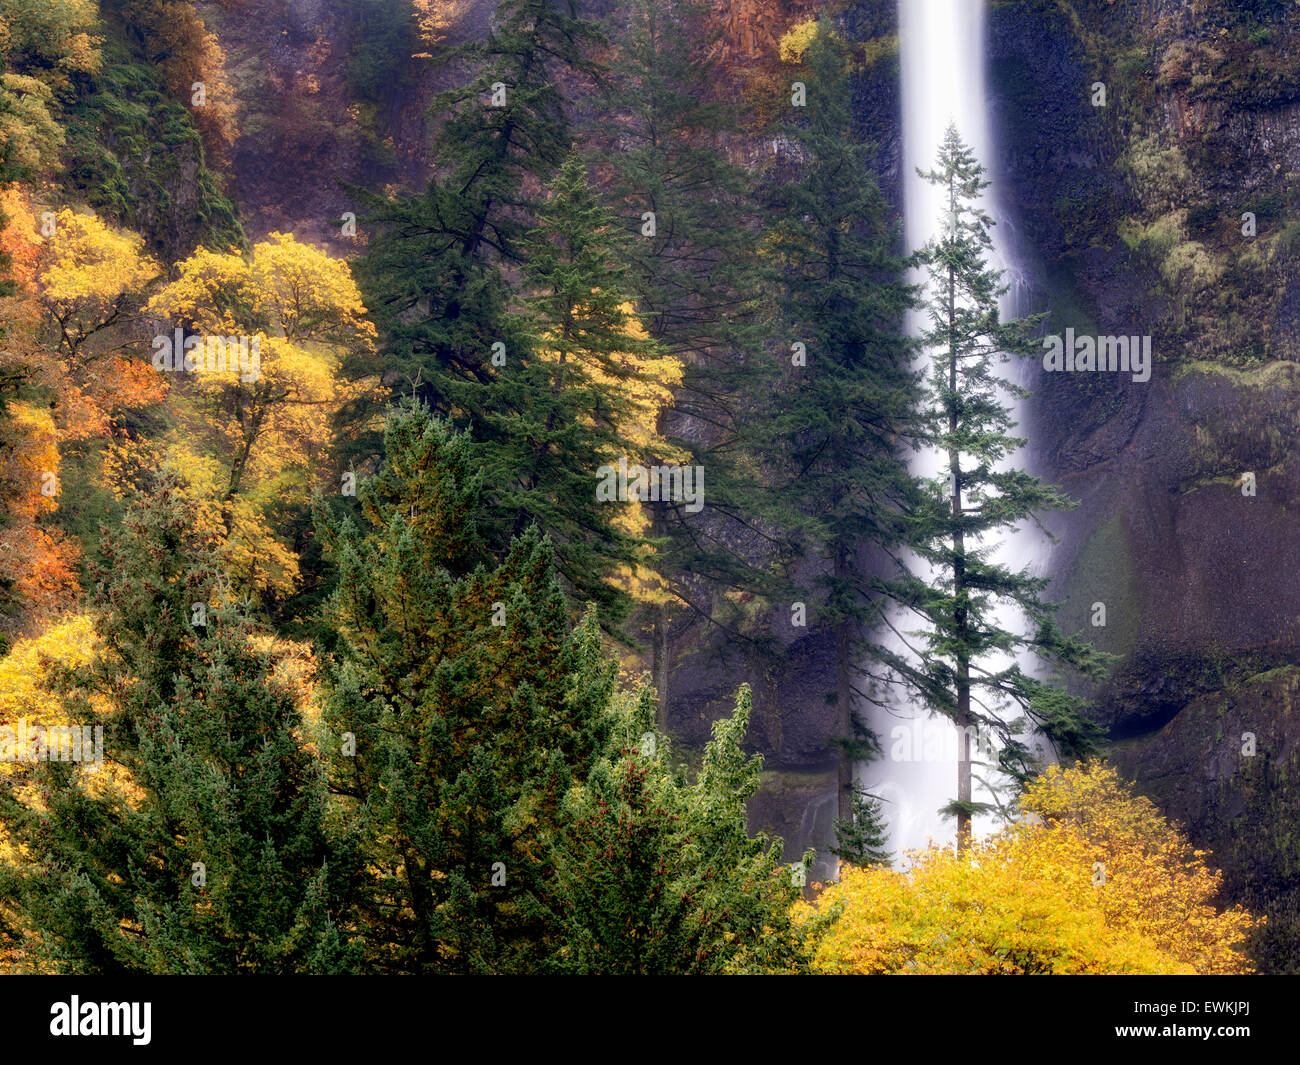 Multnomah Falls with fall color. Columbia River Gorge National Scenic Area, Oregon - Stock Image